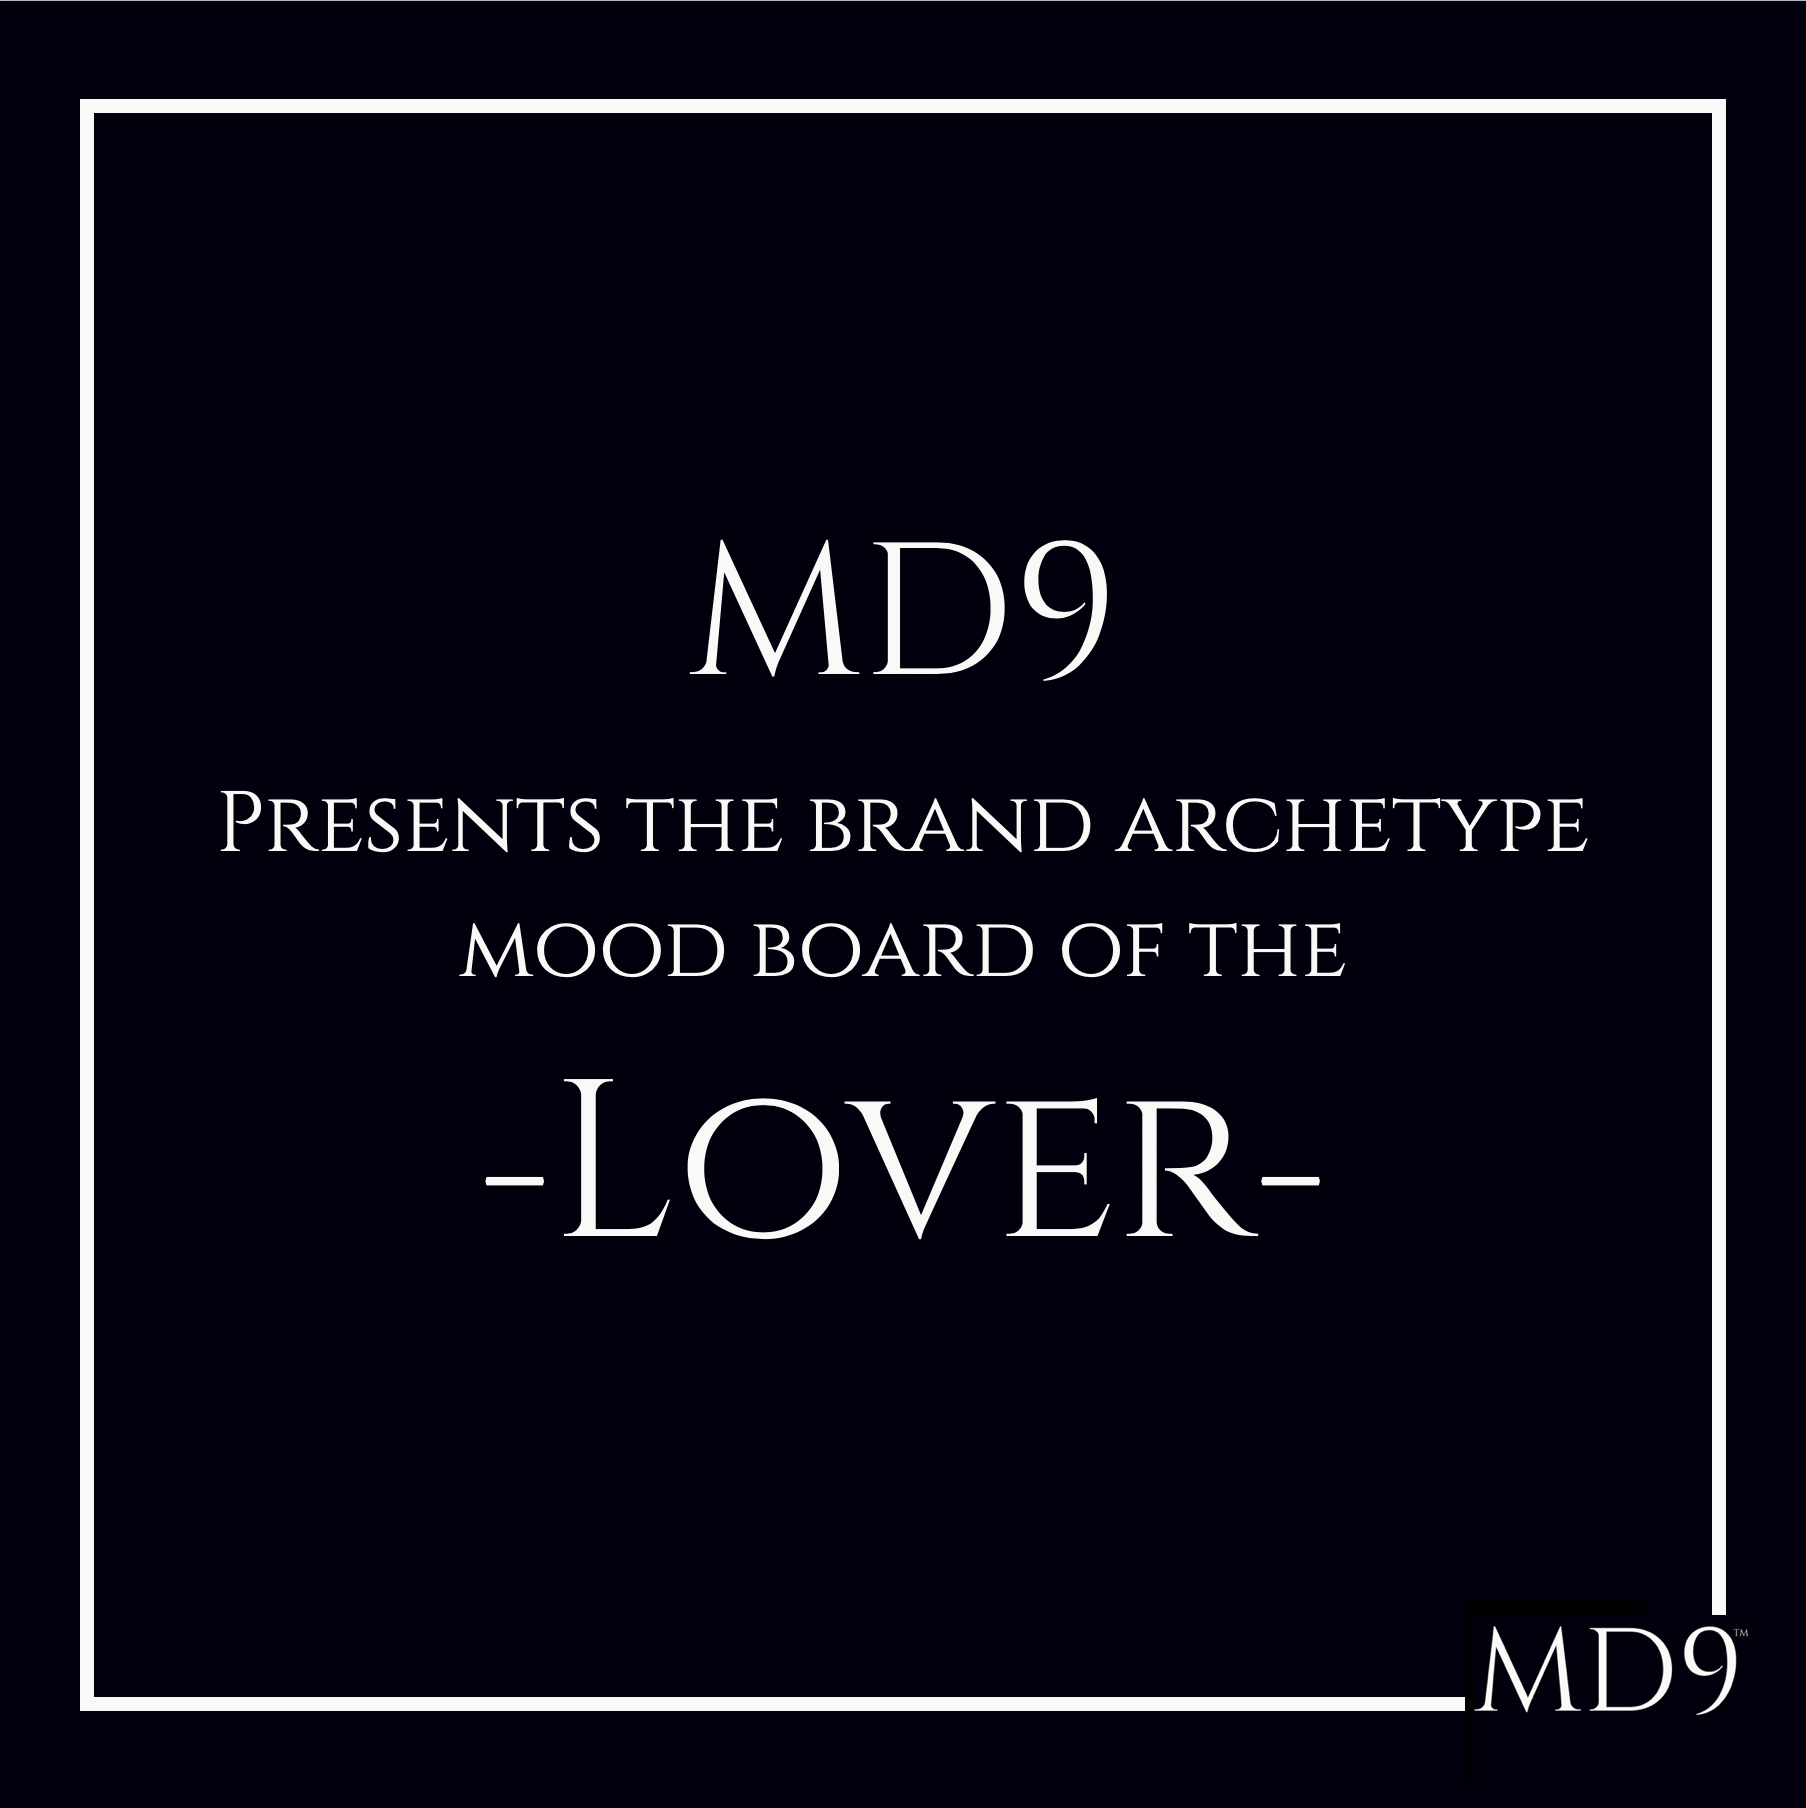 MD9's Brand Archetype Mood Board – Lover